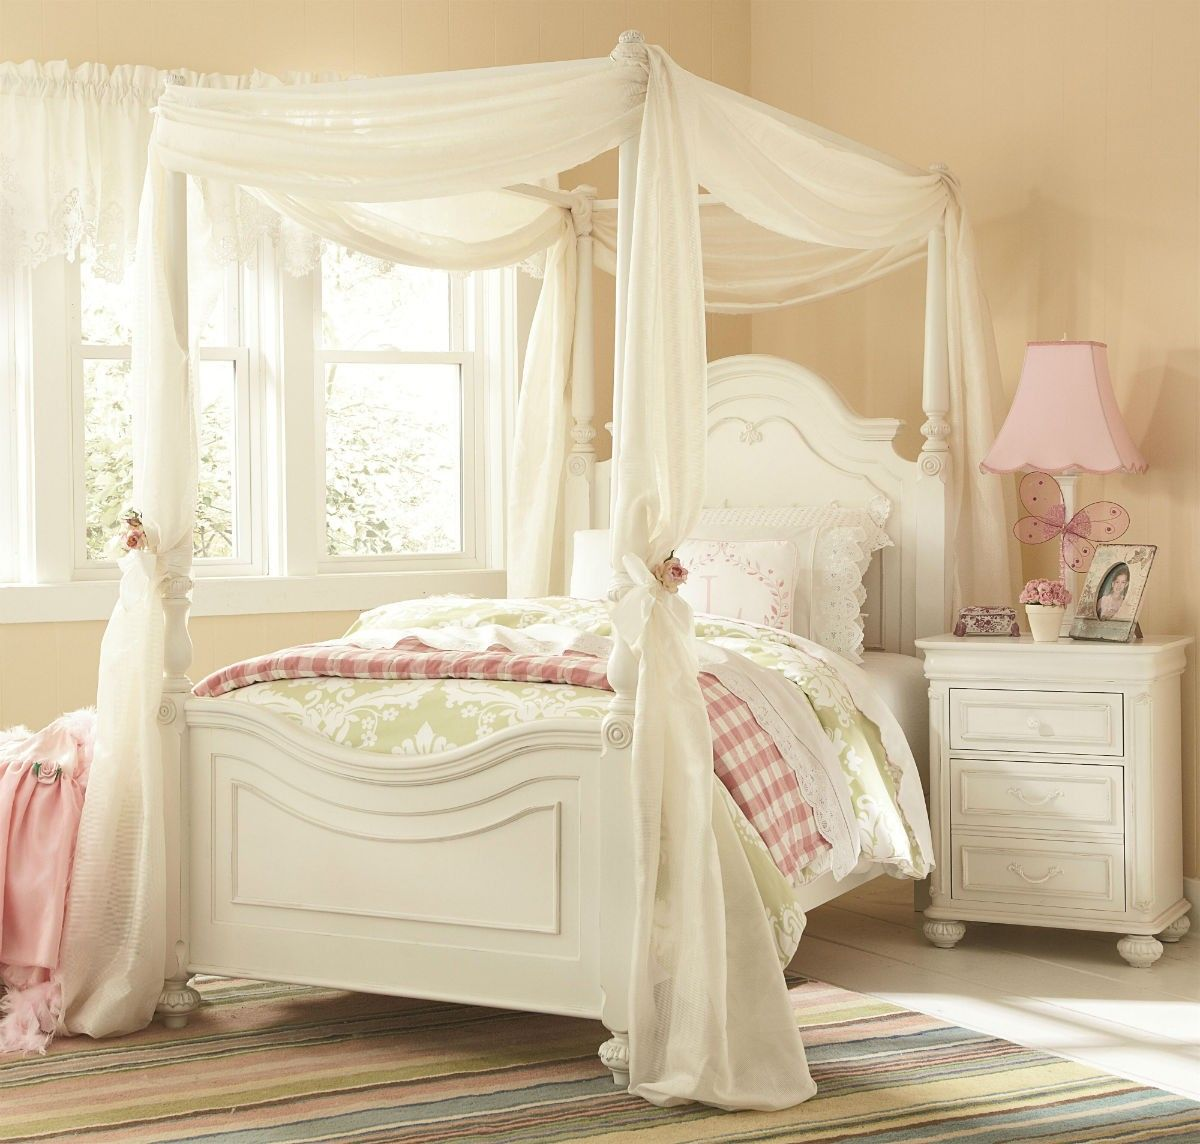 19 Fabulous Canopy Bed Designs For Your Little Princess | Canopy